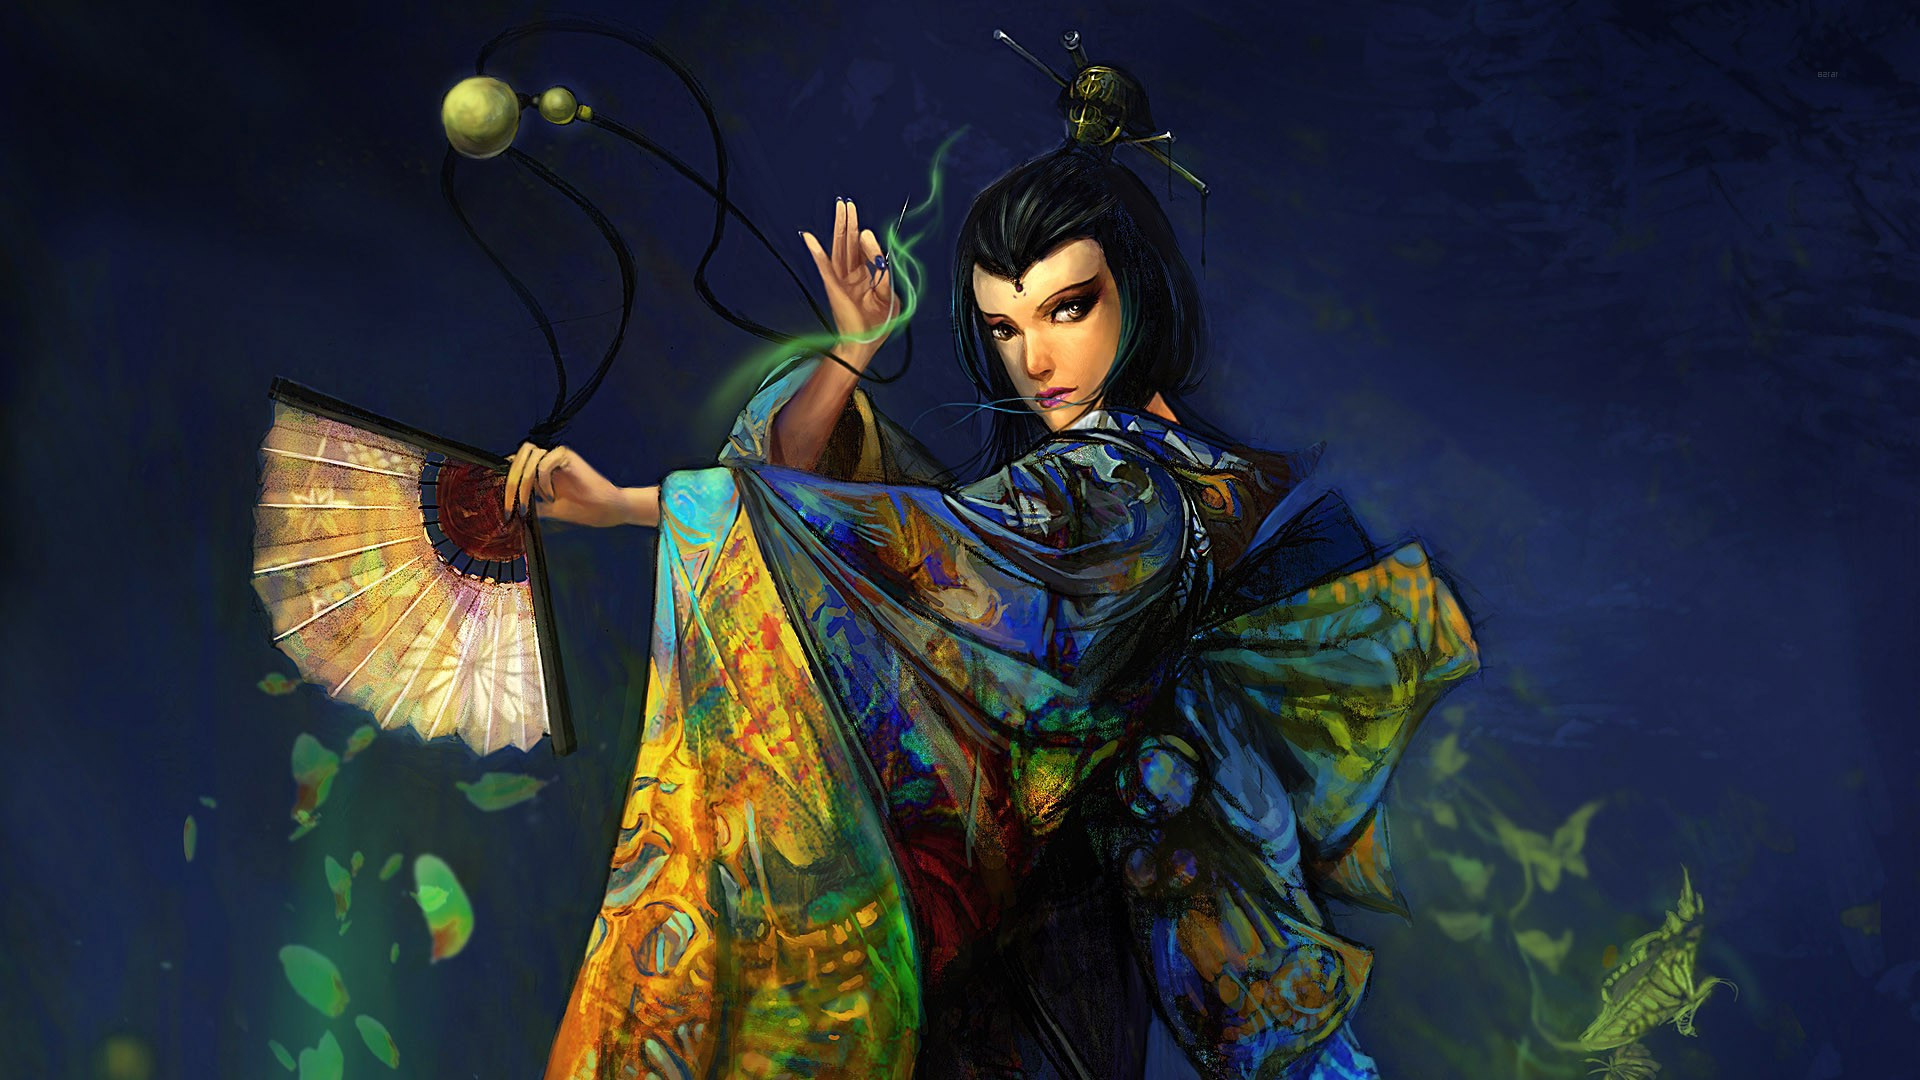 Geisha performing with a fan wallpaper 3209 1920x1080